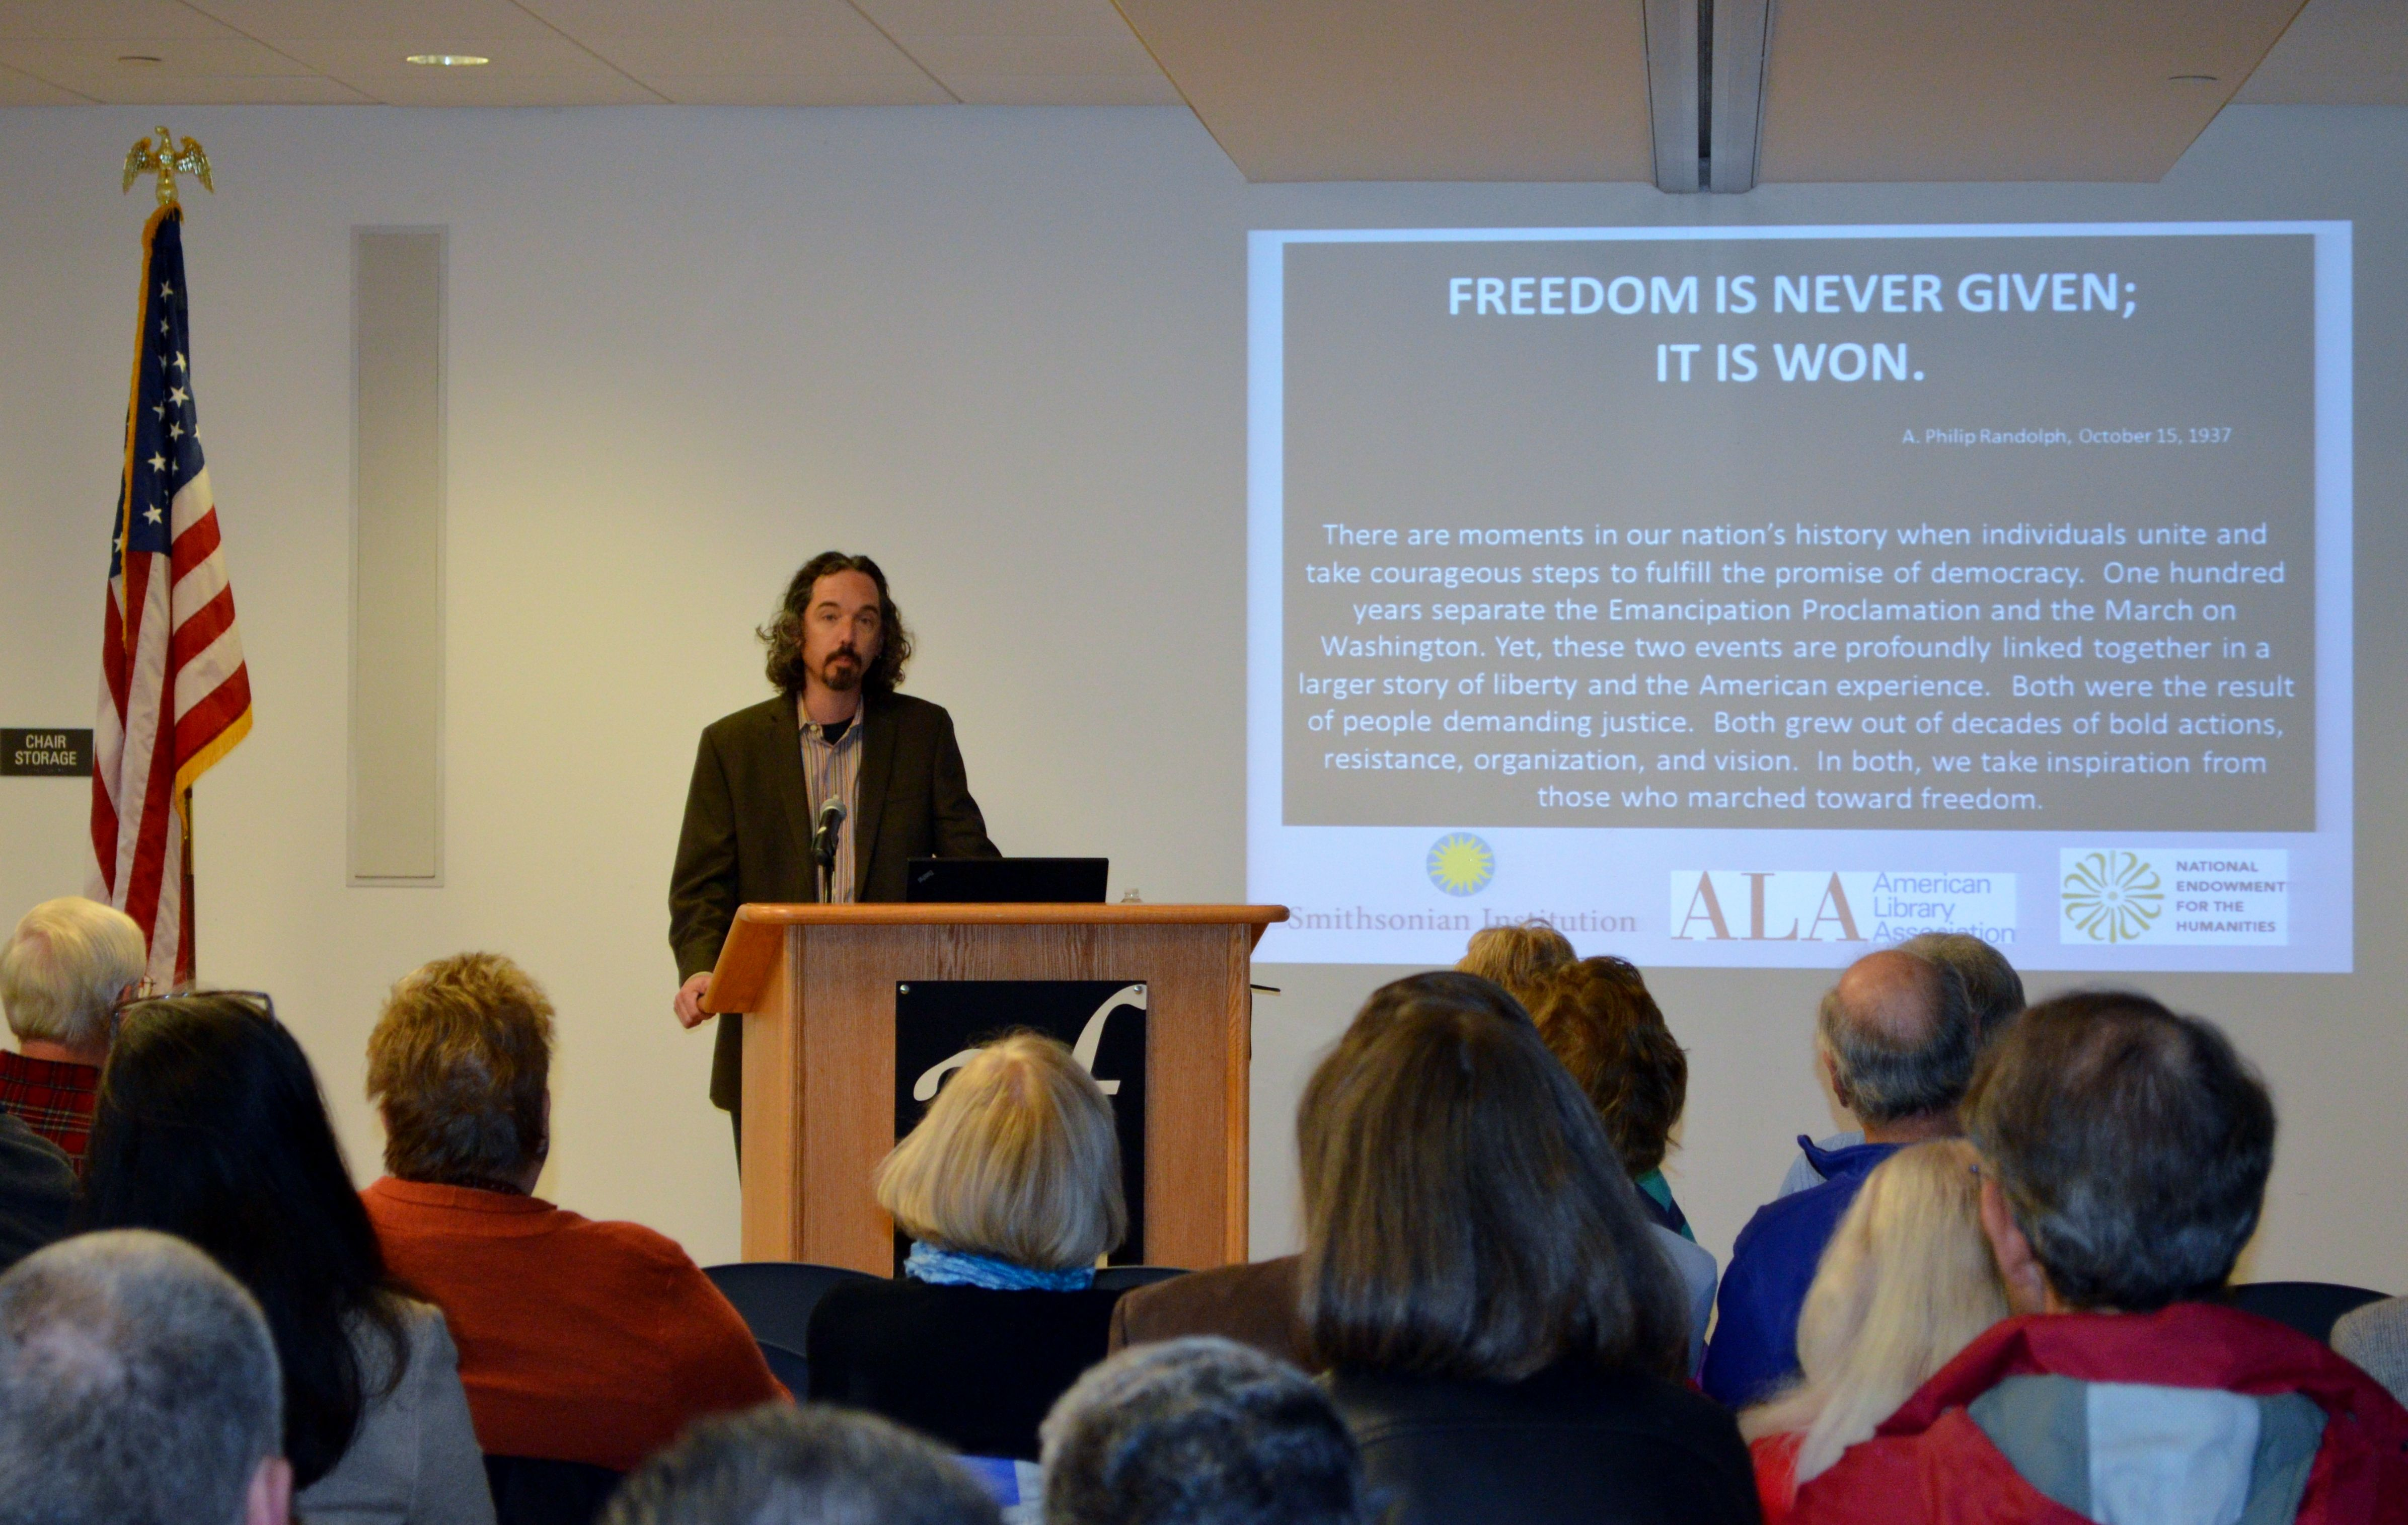 Glenn Grube Director Of The Avon Public Library Addresses The Audience At The Changing America Exhibit Series Openi The Proclamation Public Library America